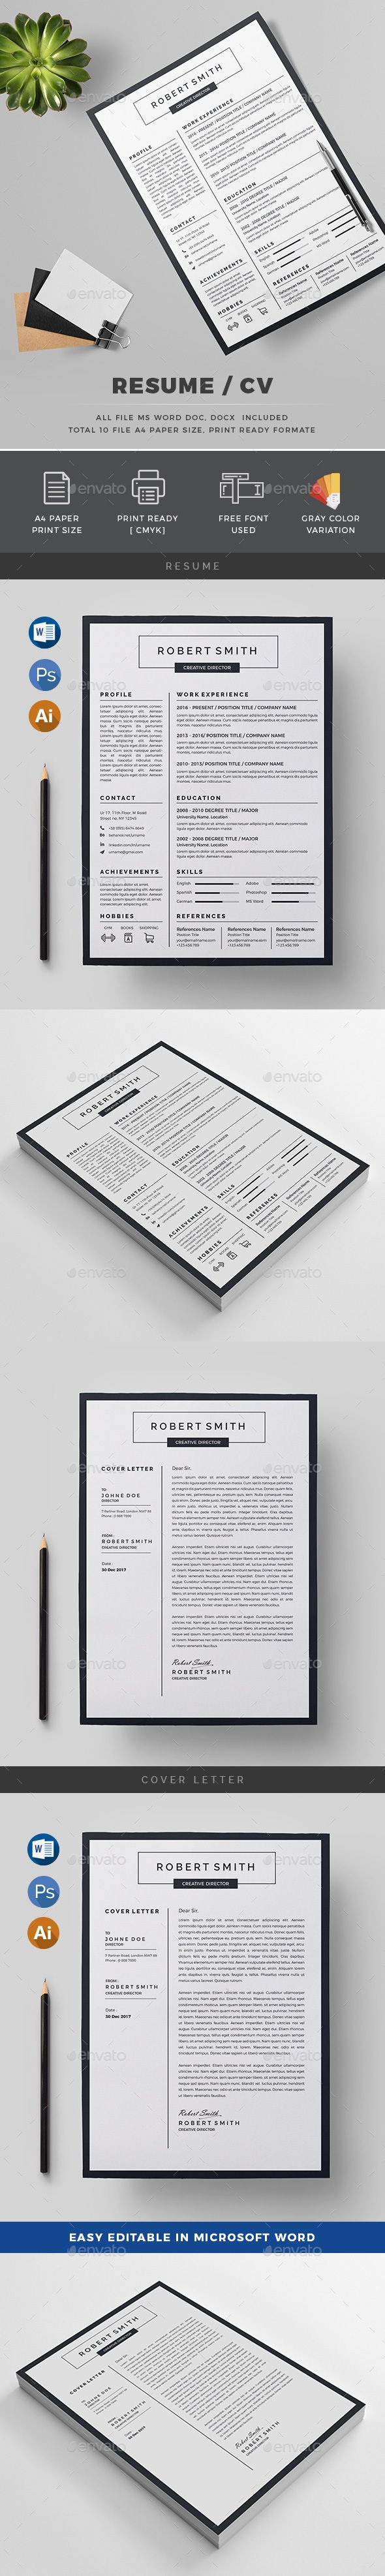 391 best • Resume, Invoice, Proposal Designs, Etc. images on ...